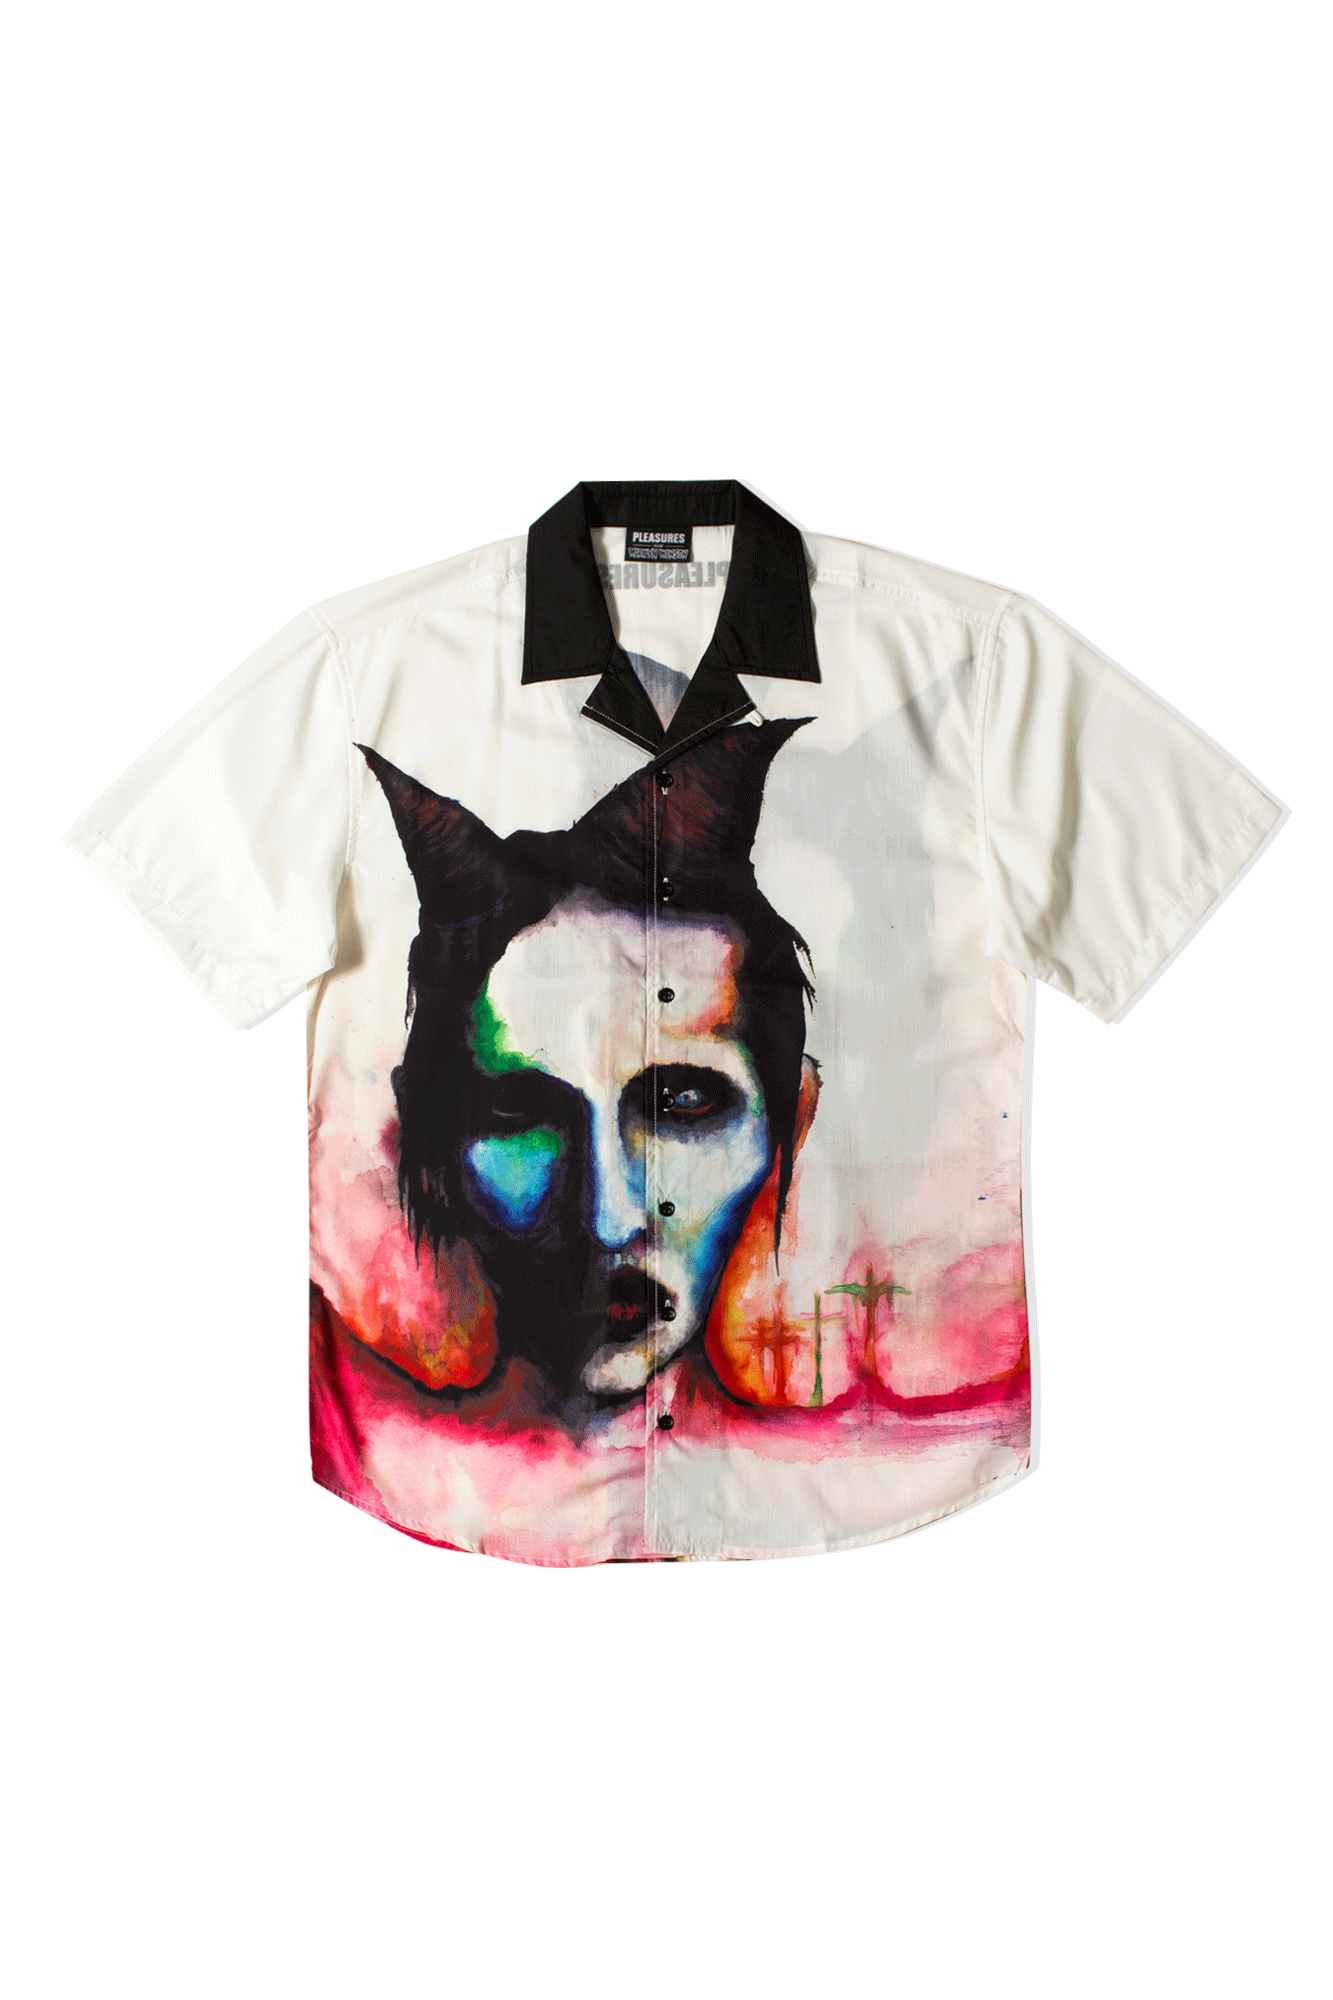 Watercolor Camp Shirt x Marilyn Manson Black